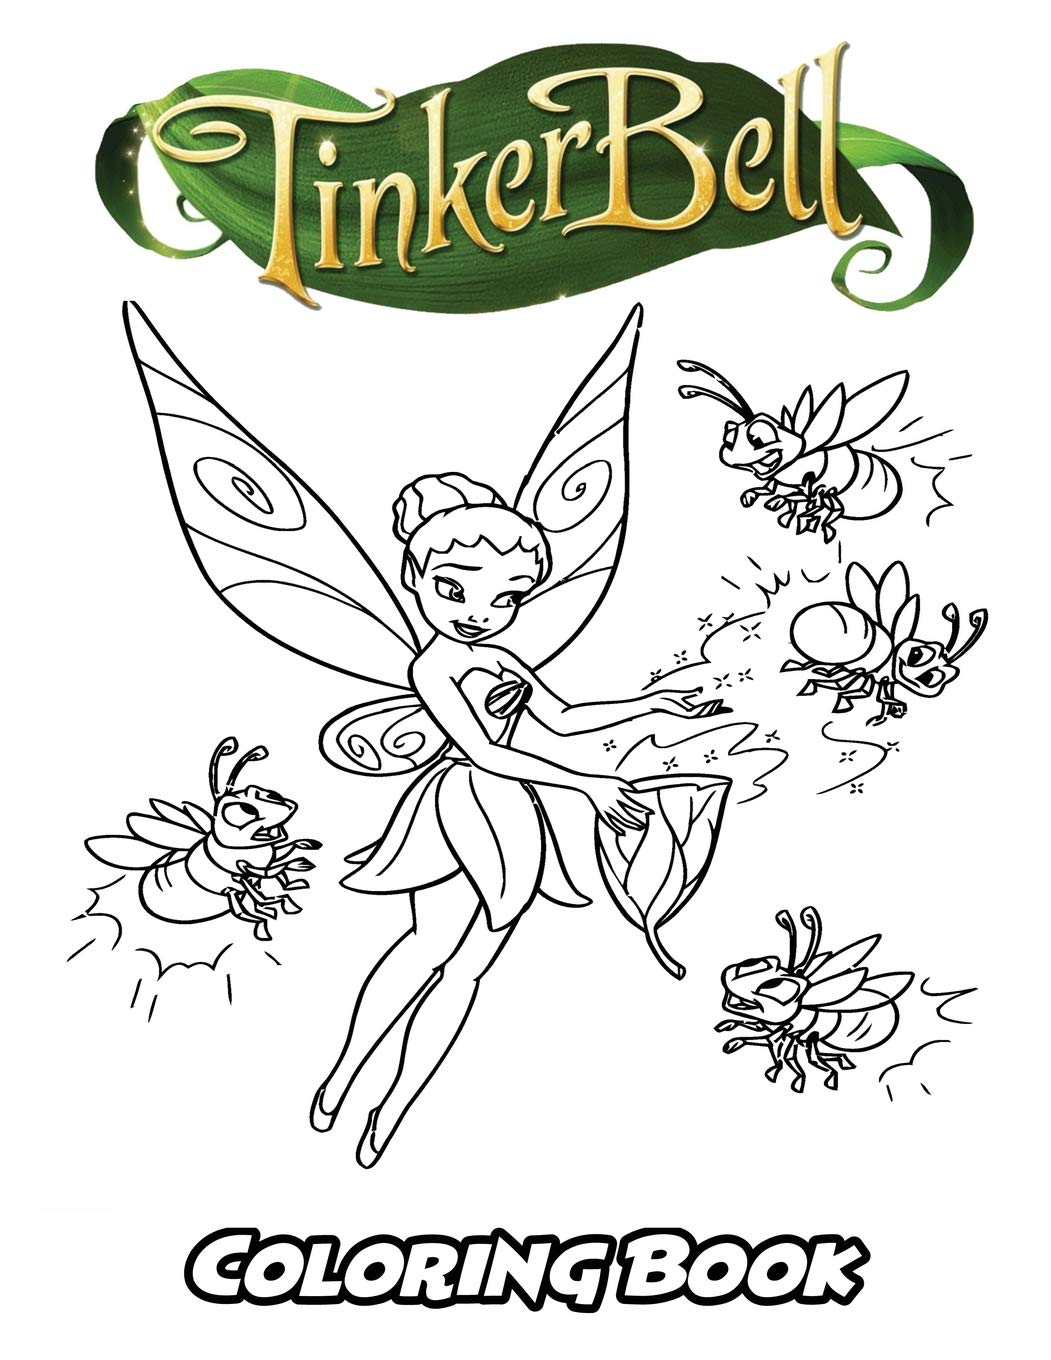 Tinkerbell coloring book coloring book for kids and adults activity book with fun easy and relaxing coloring pages perfect for children ages 3 5 6 8